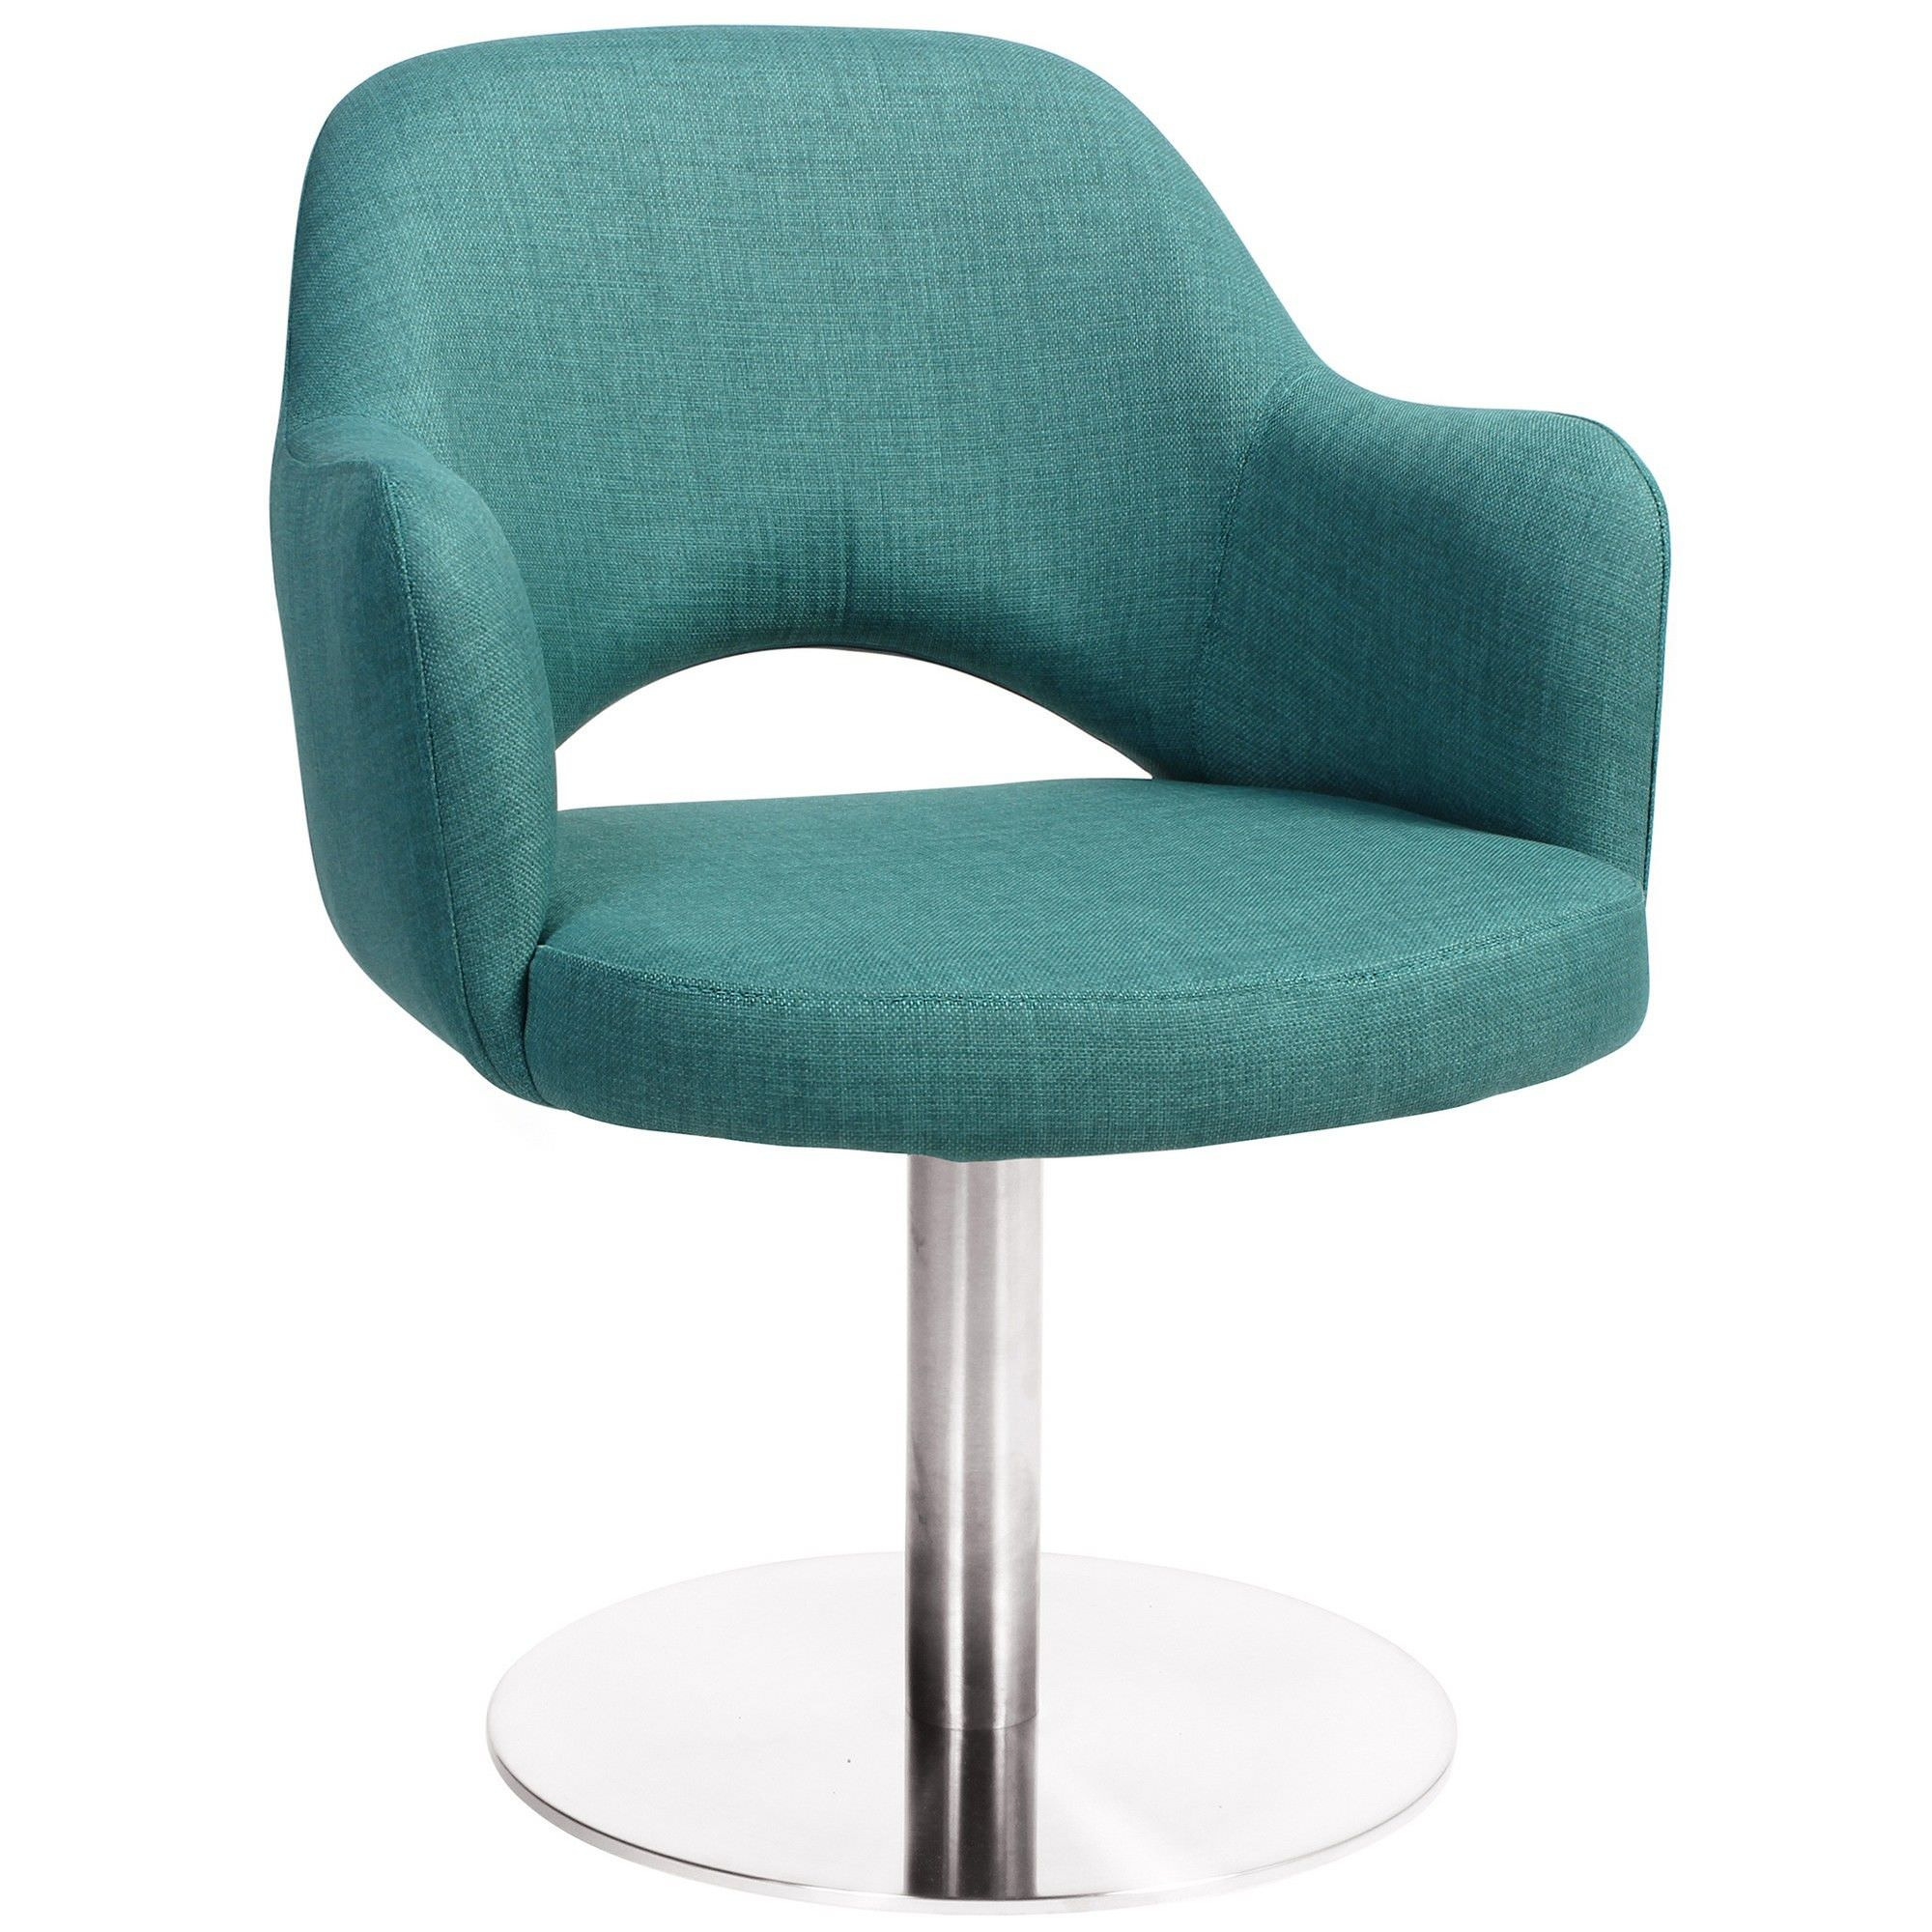 Albury Commercial Grade Fabric Dining Stool with Arm, Metal Disc Base, Teal / Silver